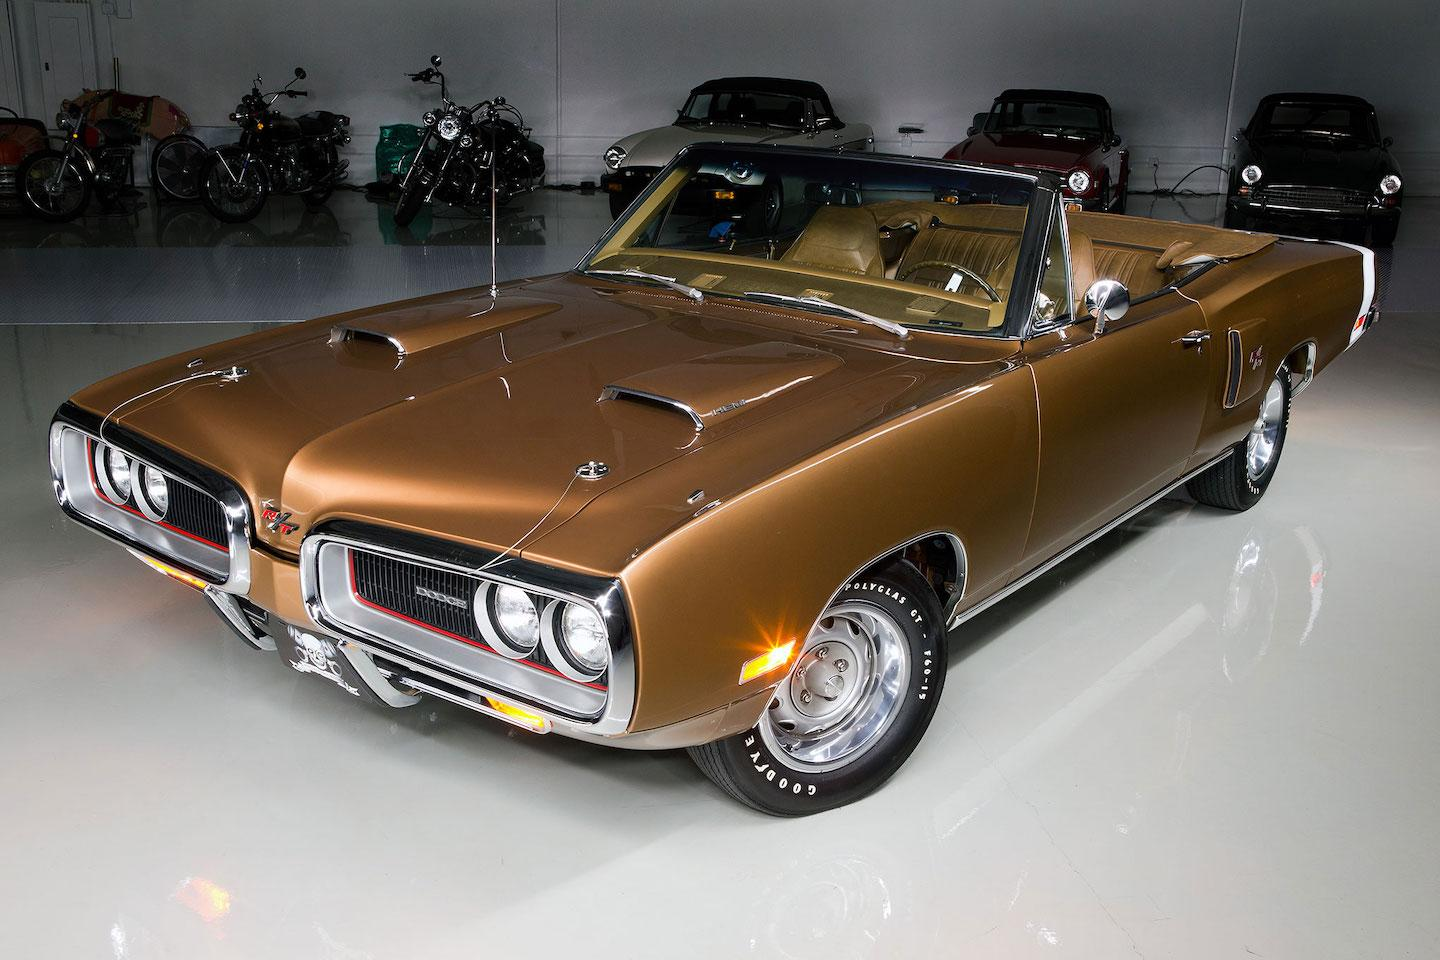 Dodge Coronet RT 426 Hemi Convertible